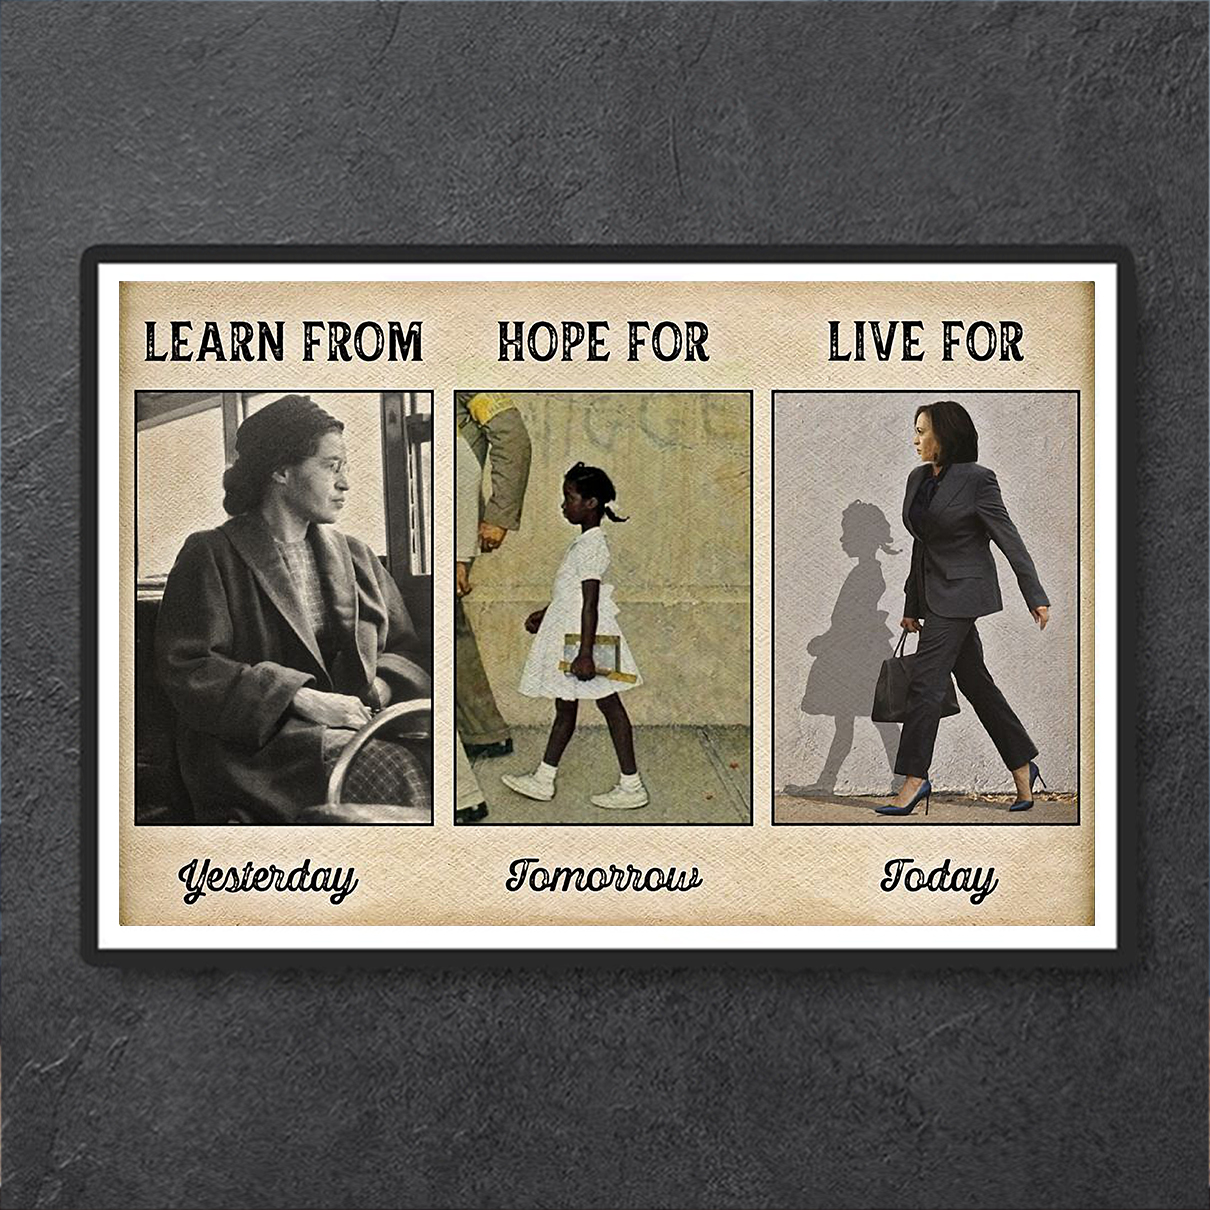 Learn from yesterday hope for tomorrow live for today poster A1